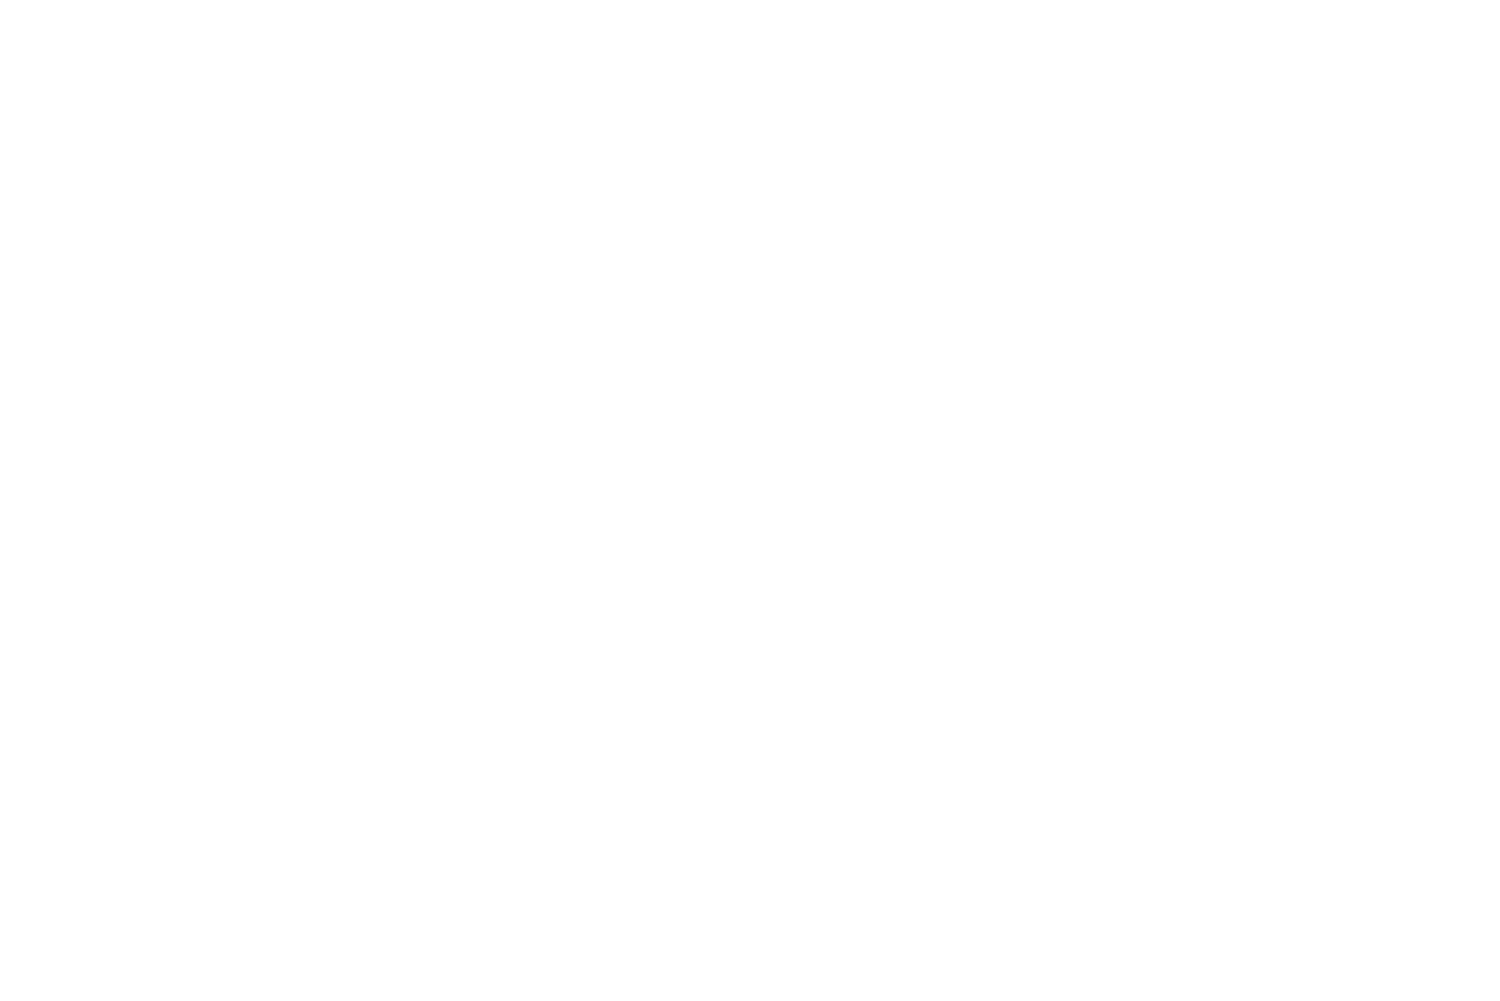 DJ TWO SHOES